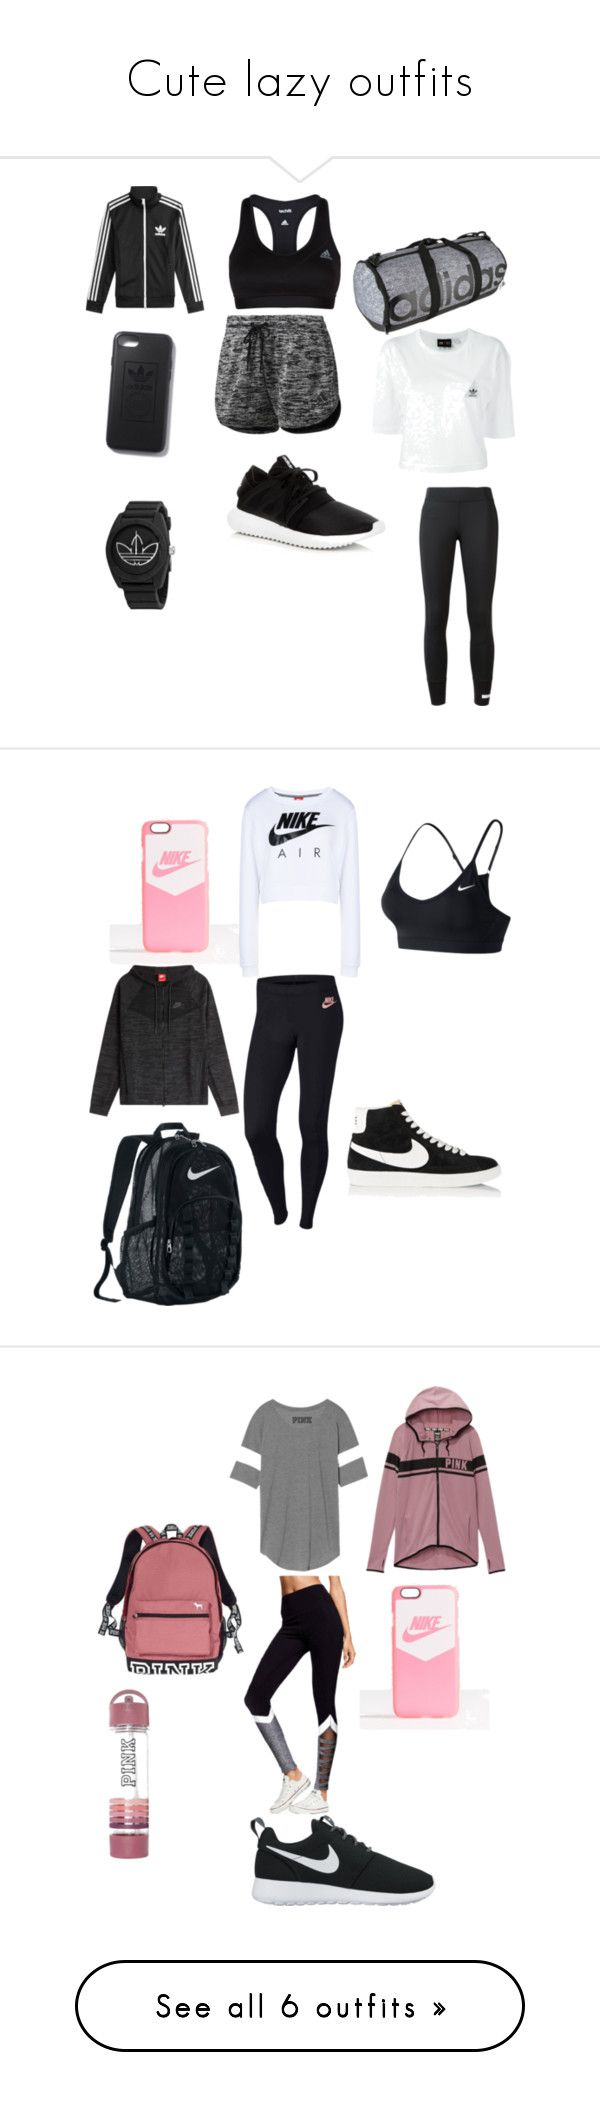 """Cute lazy outfits"" by jno712 ❤ liked on Polyvore featuring adidas, adidas Originals, NIKE, Victoria's Secret, Victoria's Secret PINK, Monrow, American Vintage, Levi's, MANGO and Puma"